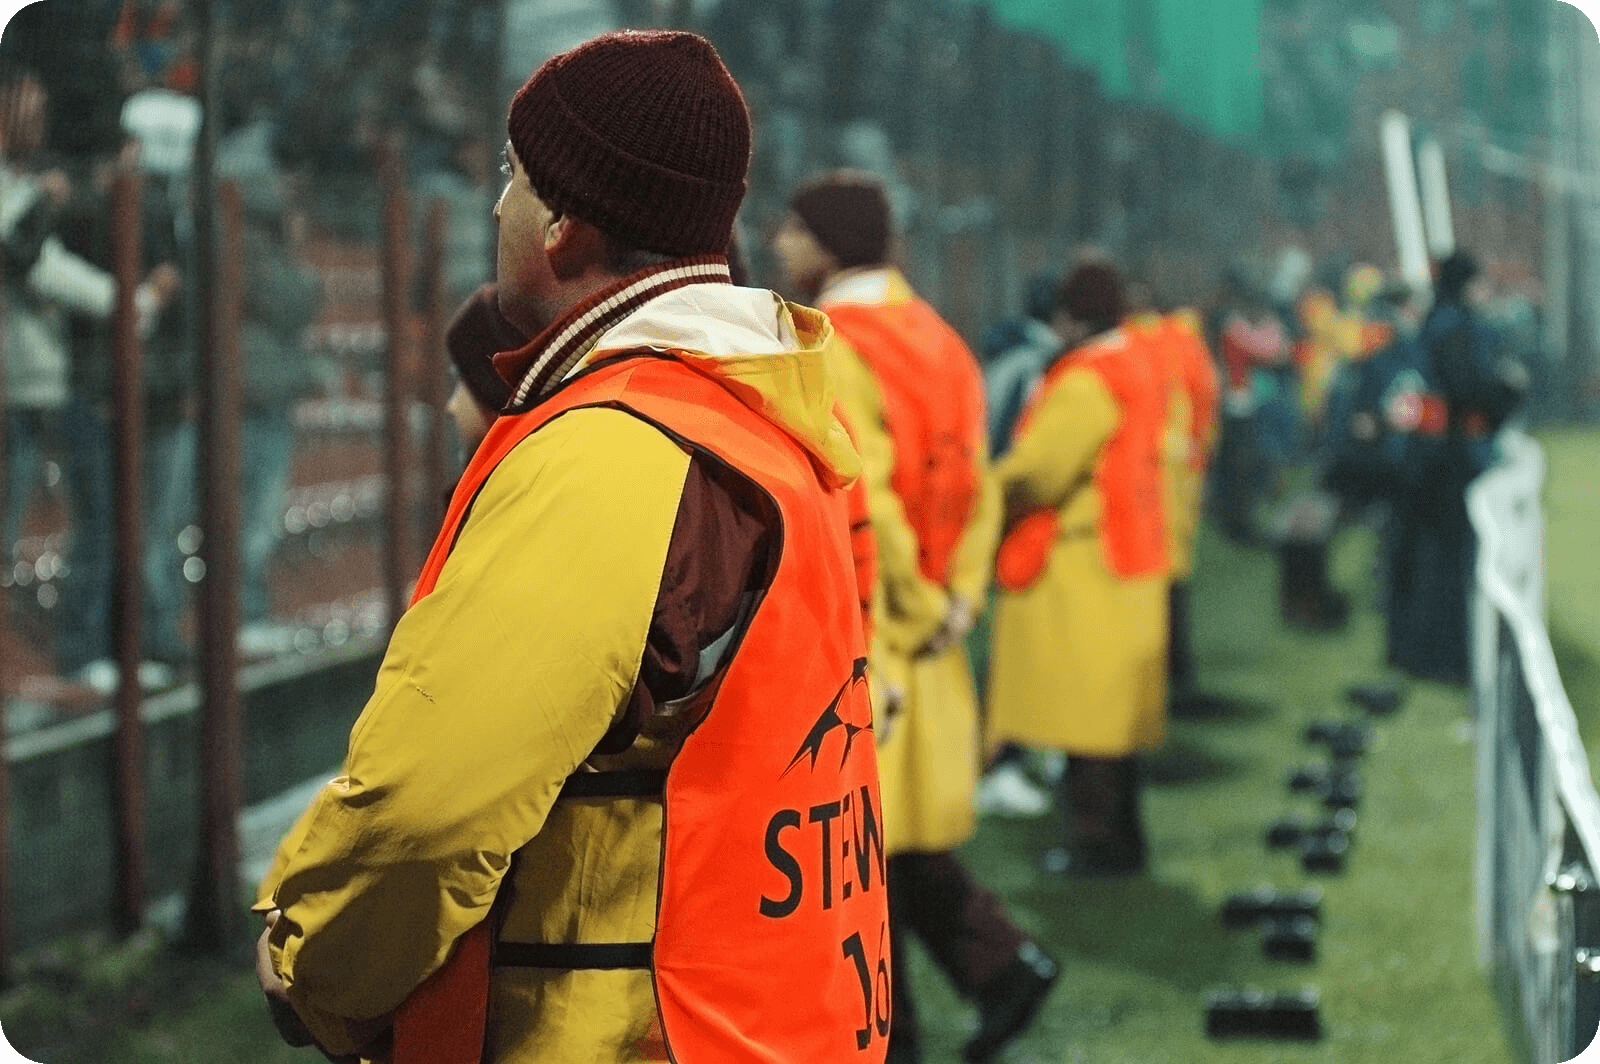 Security for Sporting Events | Global Security Solutions